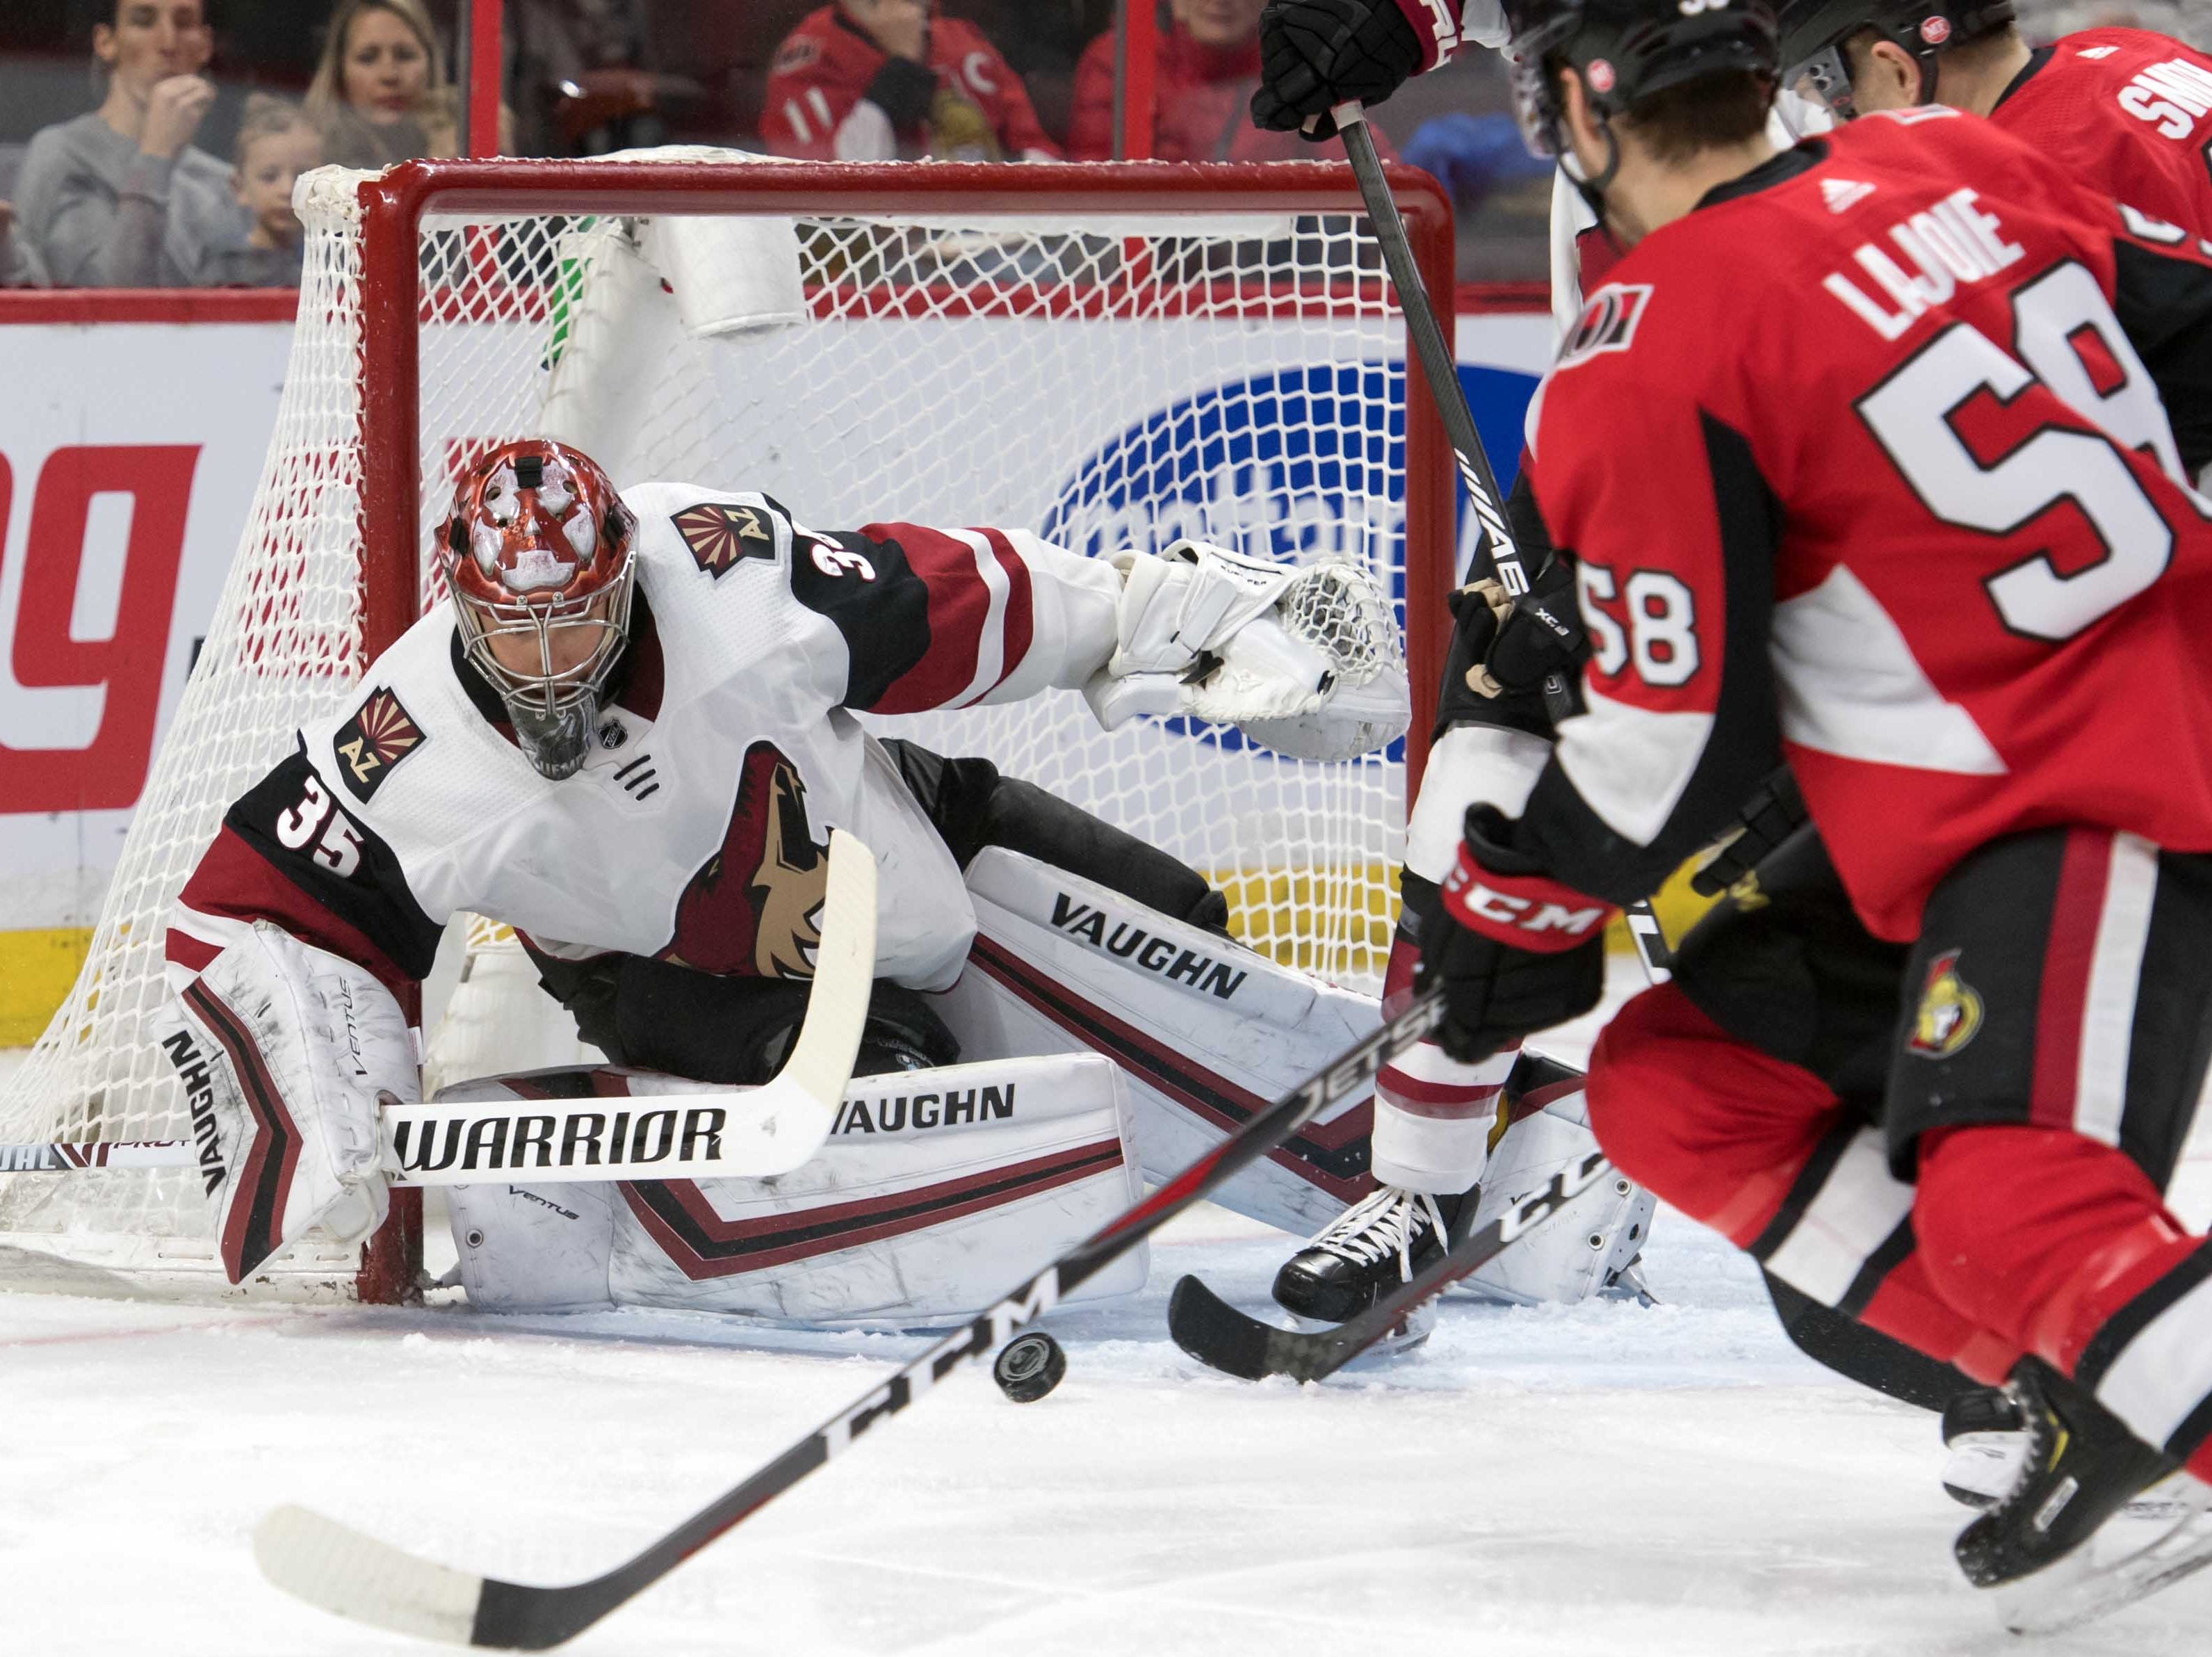 Jan 22, 2019; Ottawa, Ontario, CAN; Arizona Coyotes goalie Darcy Kuemper (35) makes a save in front of  Ottawa Senators defenseman Maxime Lajoie (58) in the second period at the Canadian Tire Centre. Mandatory Credit: Marc DesRosiers-USA TODAY Sports